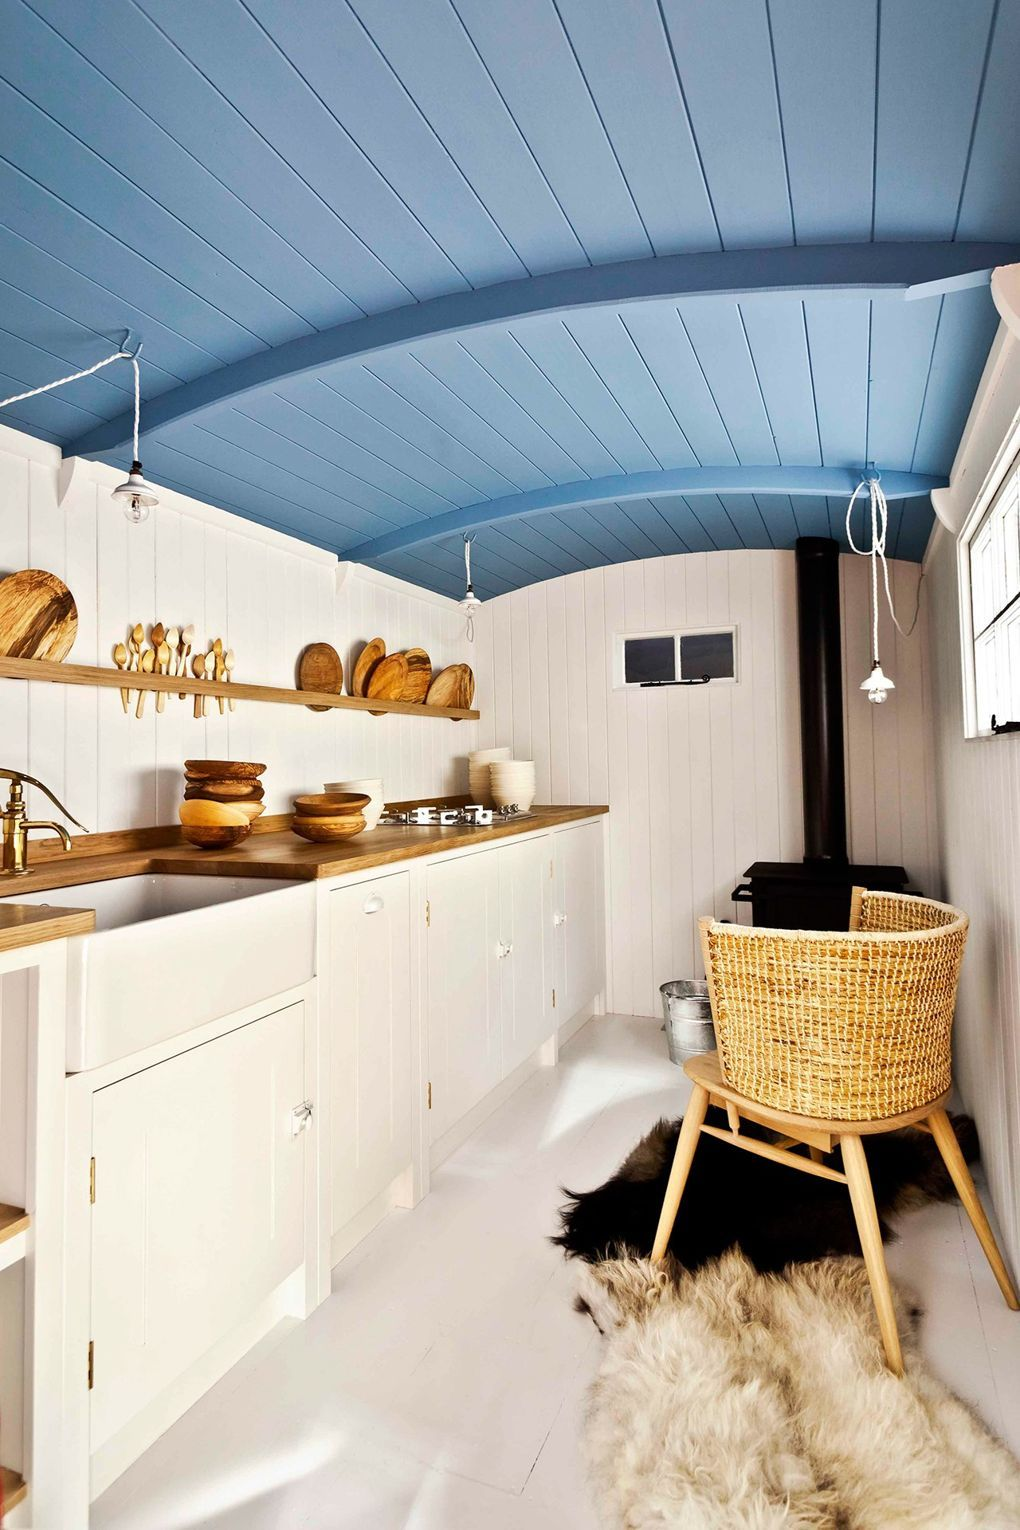 Clever Small Kitchen Ideas | British standards, Small space storage ...